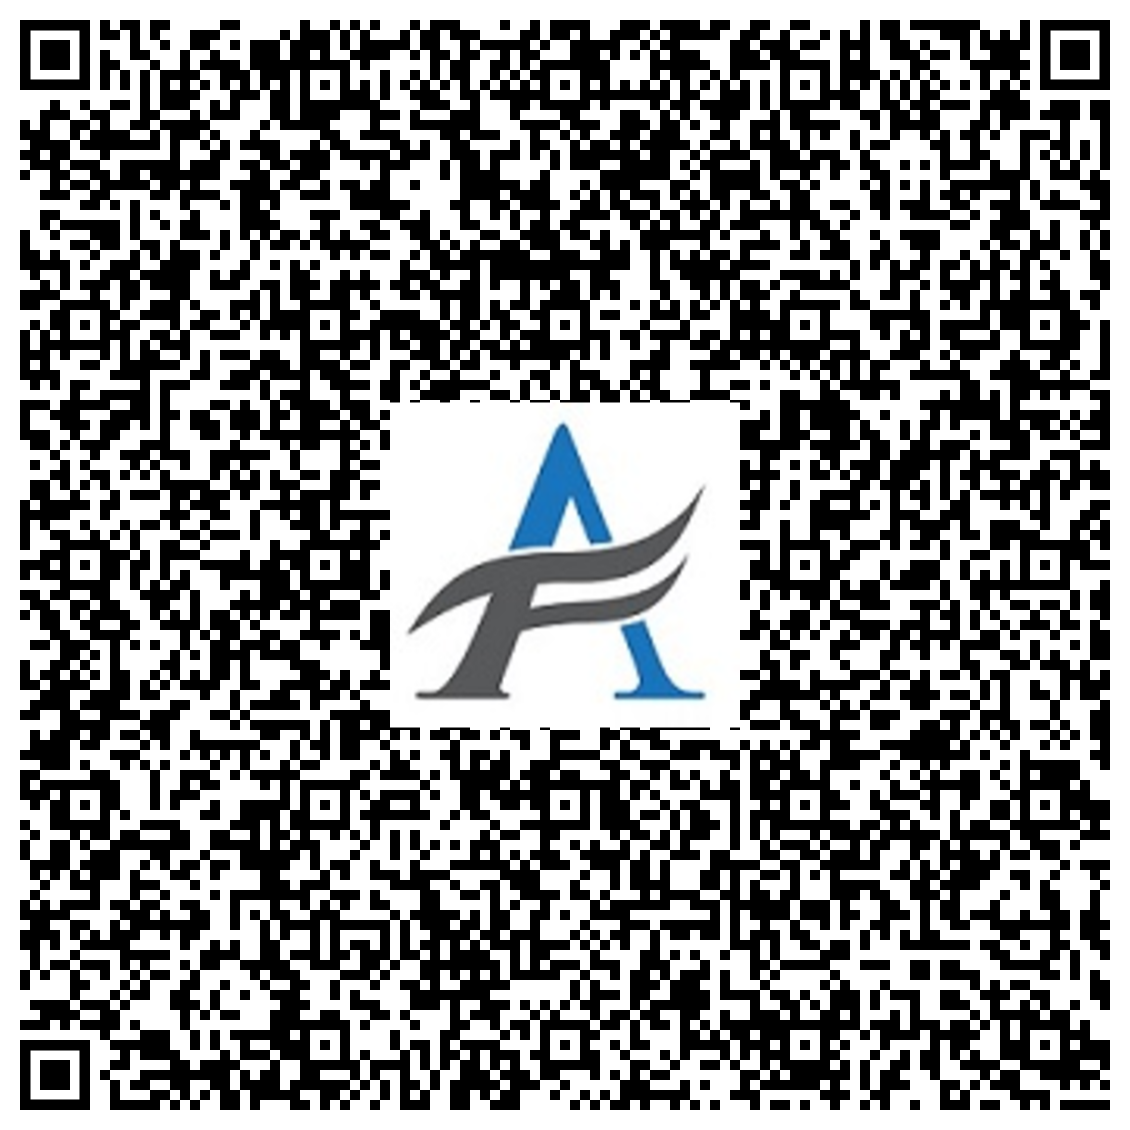 Mark Yin 尹永茂 - Atlas Furniture International - Quality Control (Q.C.) / 工厂质量控制 - vCard QR Code - scan to save to your phone contacts